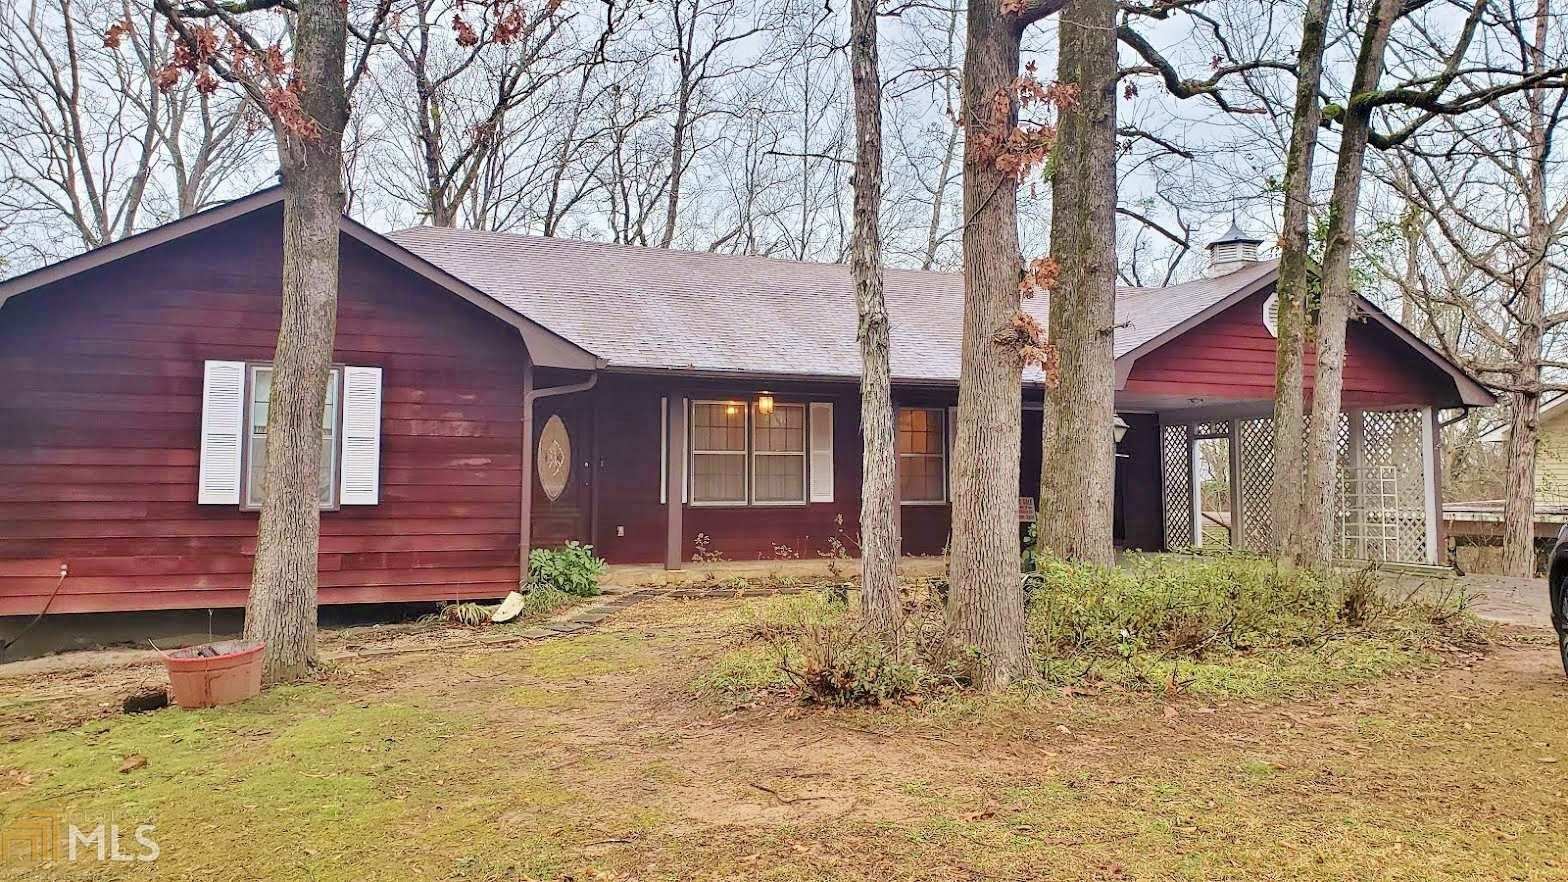 1167 Roundtable, Macon, GA 31220 - MLS#: 8911731